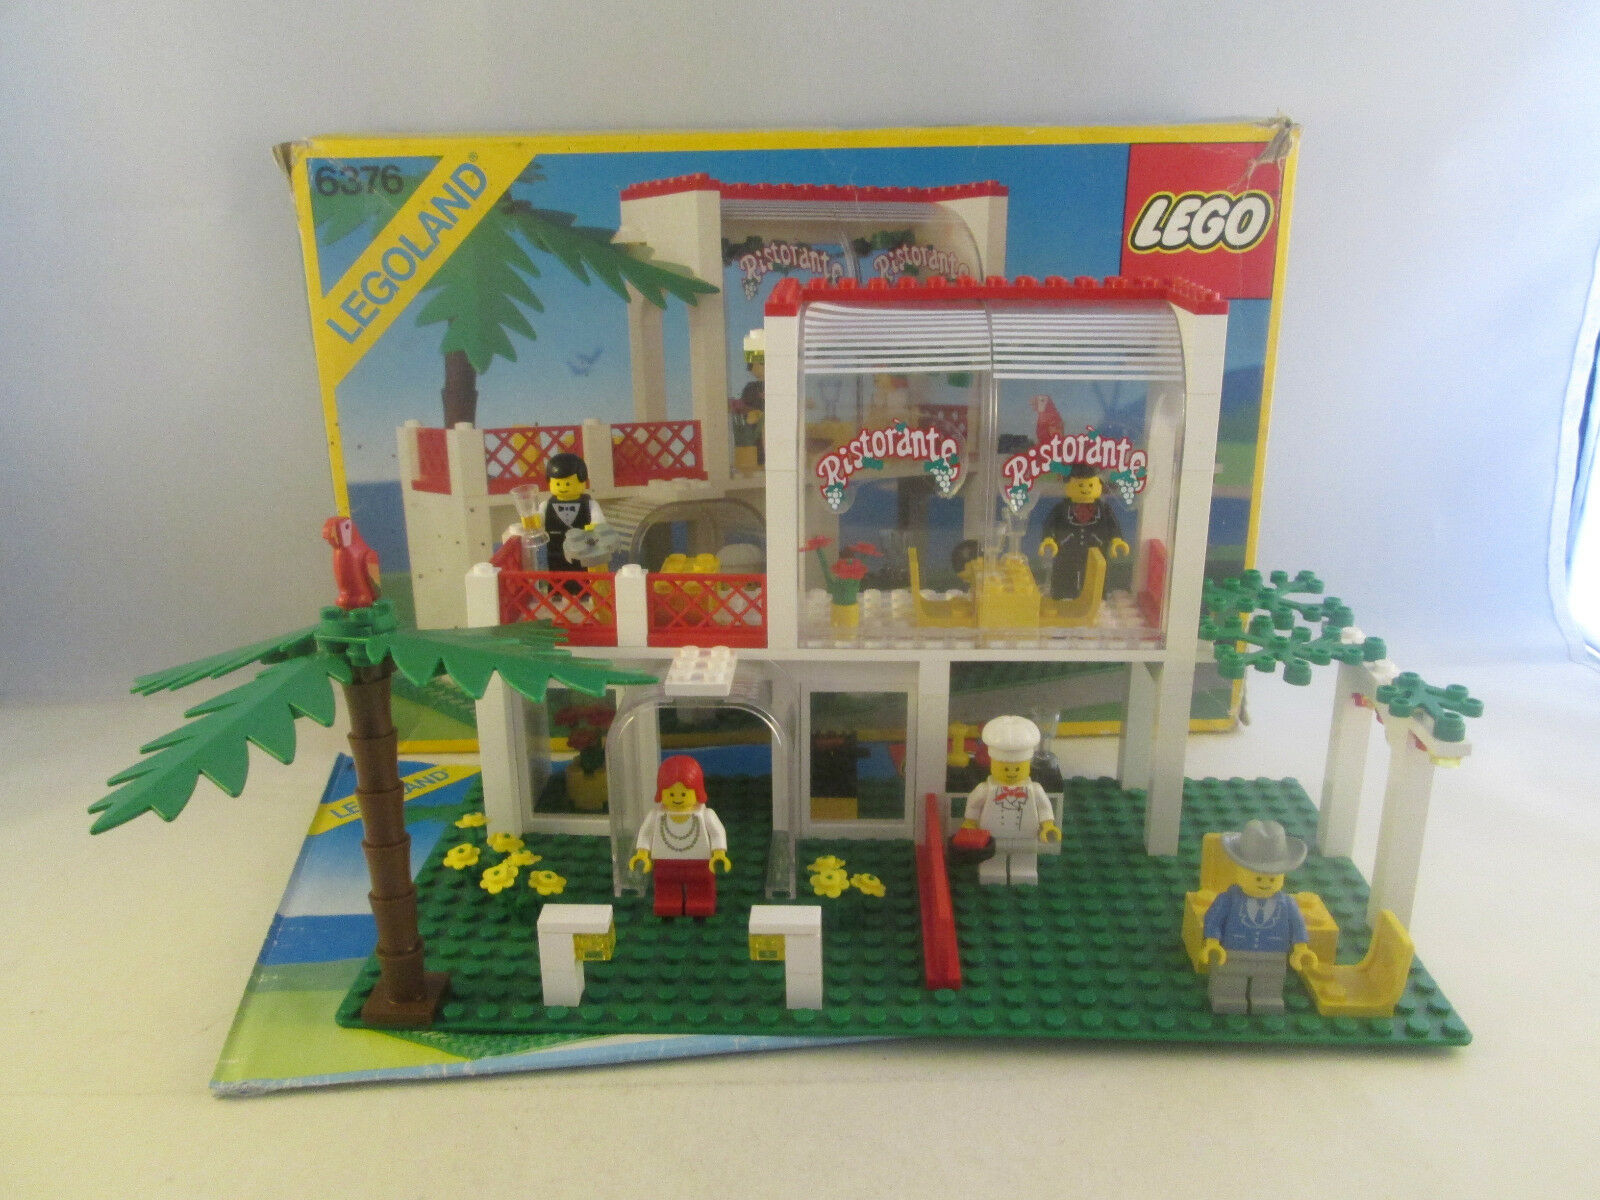 Lego Classic Town - 6376 Breezeway Cafe